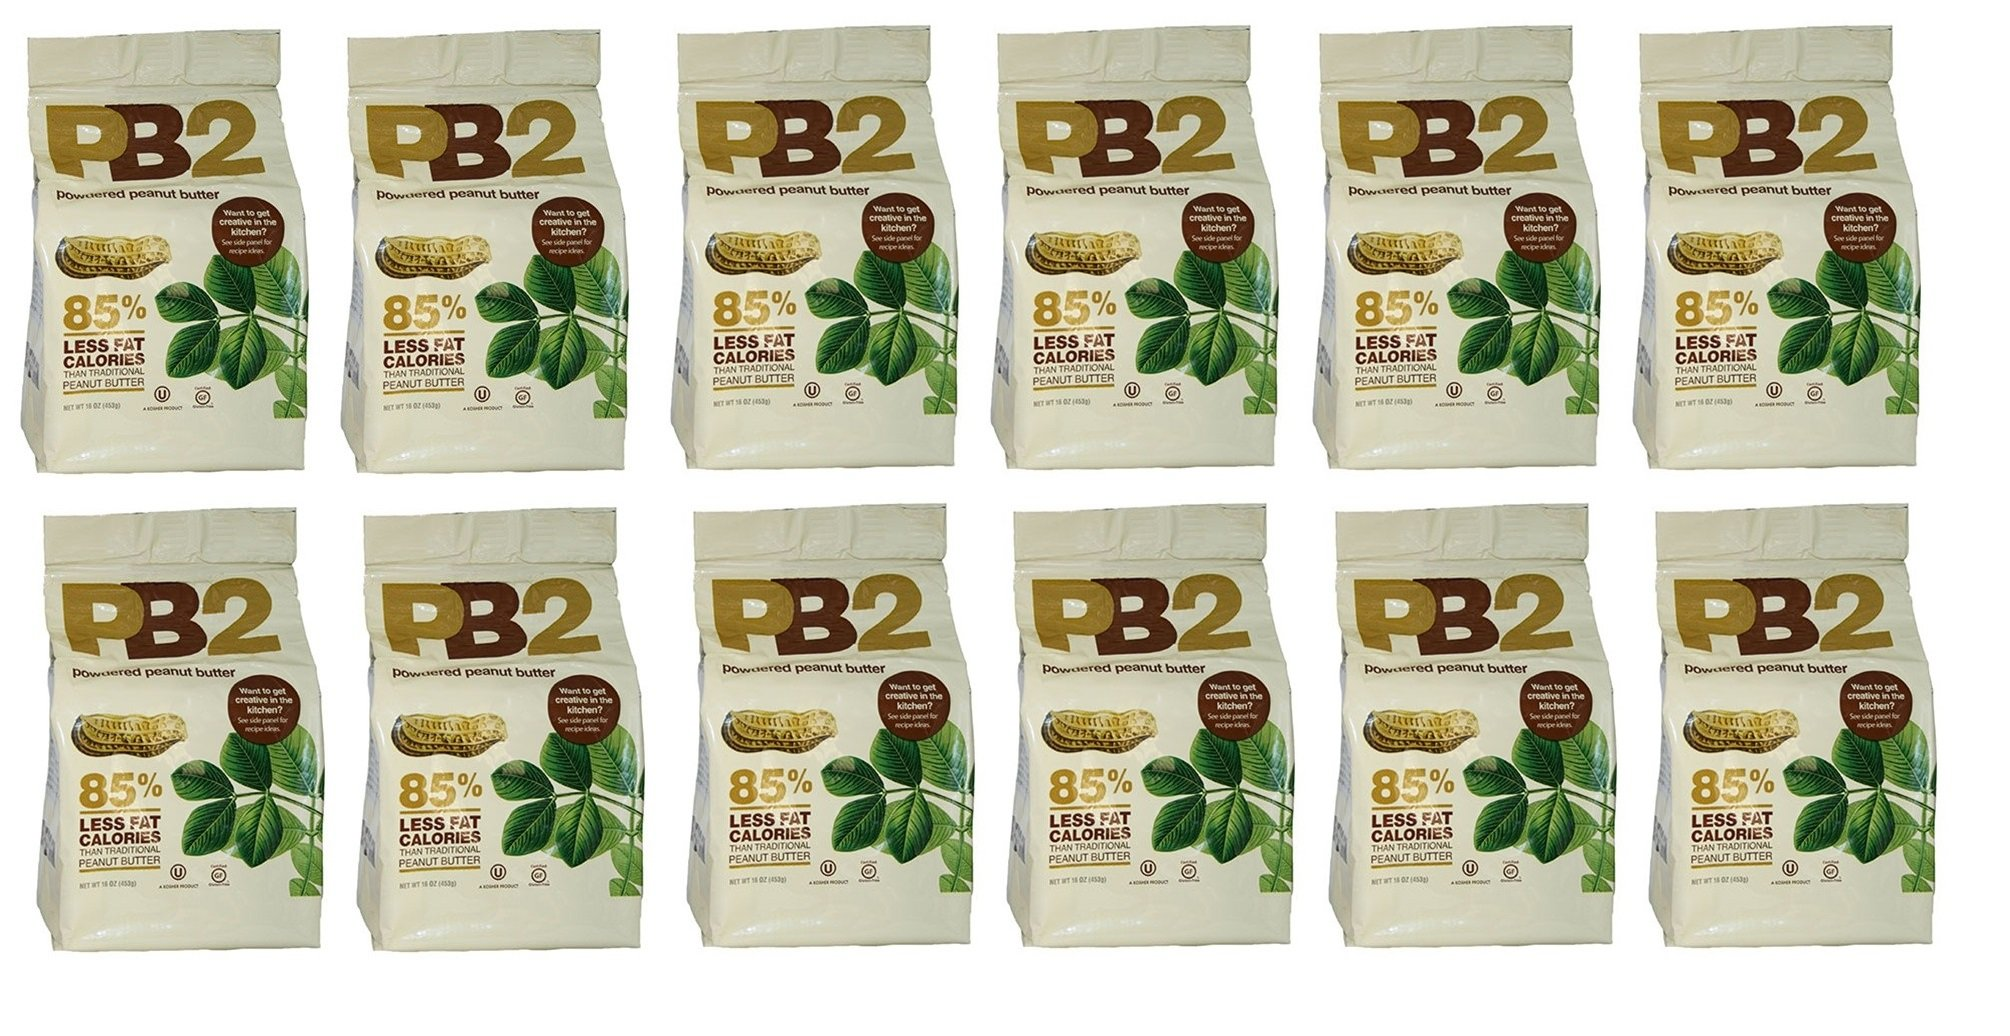 Bell Plantation Powdered Peanut Butter 16 oz - 12 Pack